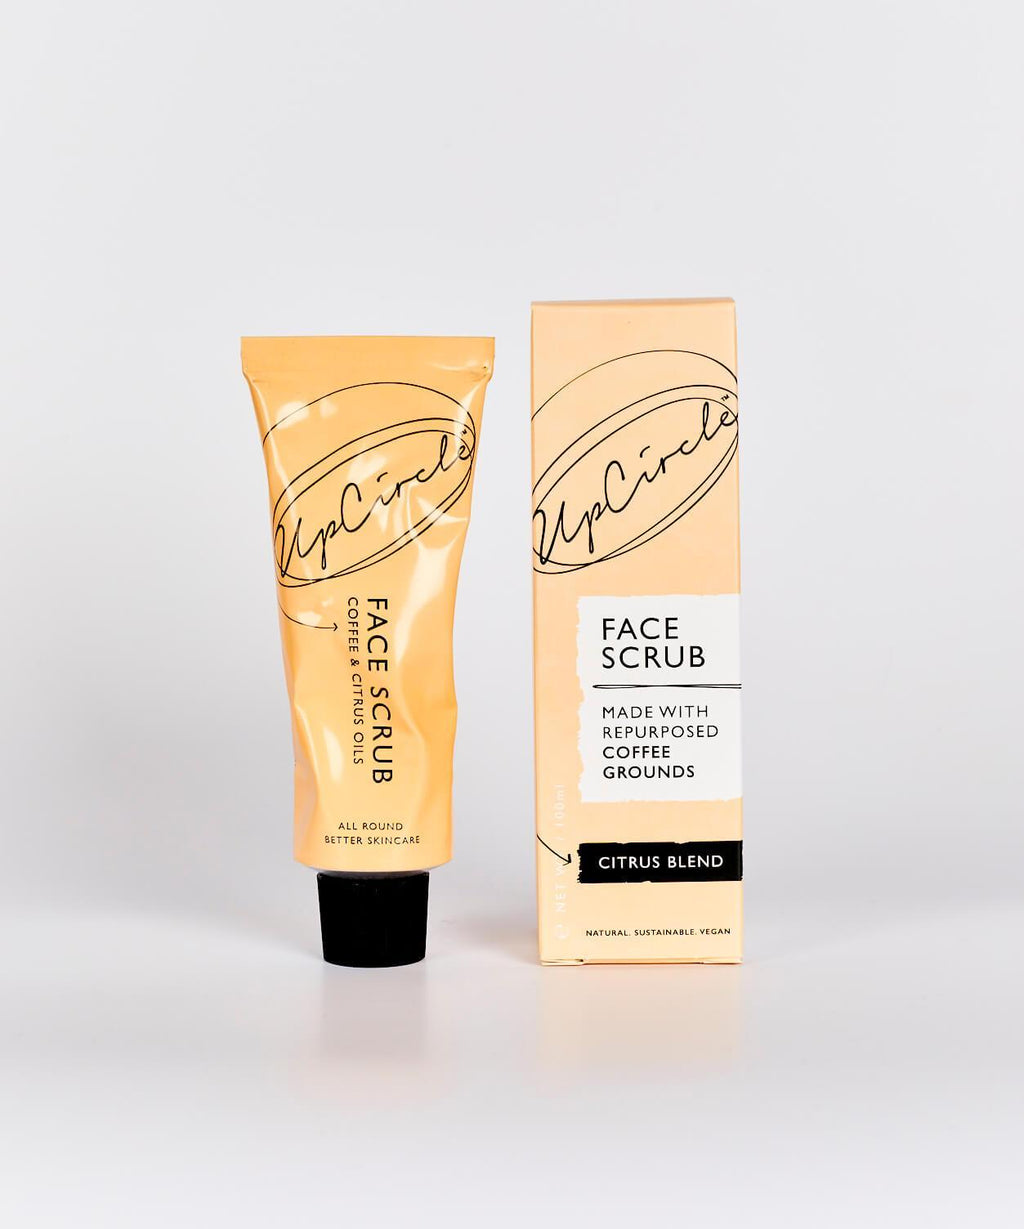 Coffee Face Scrub - Citrus Blend by UpCircle Face Scrub